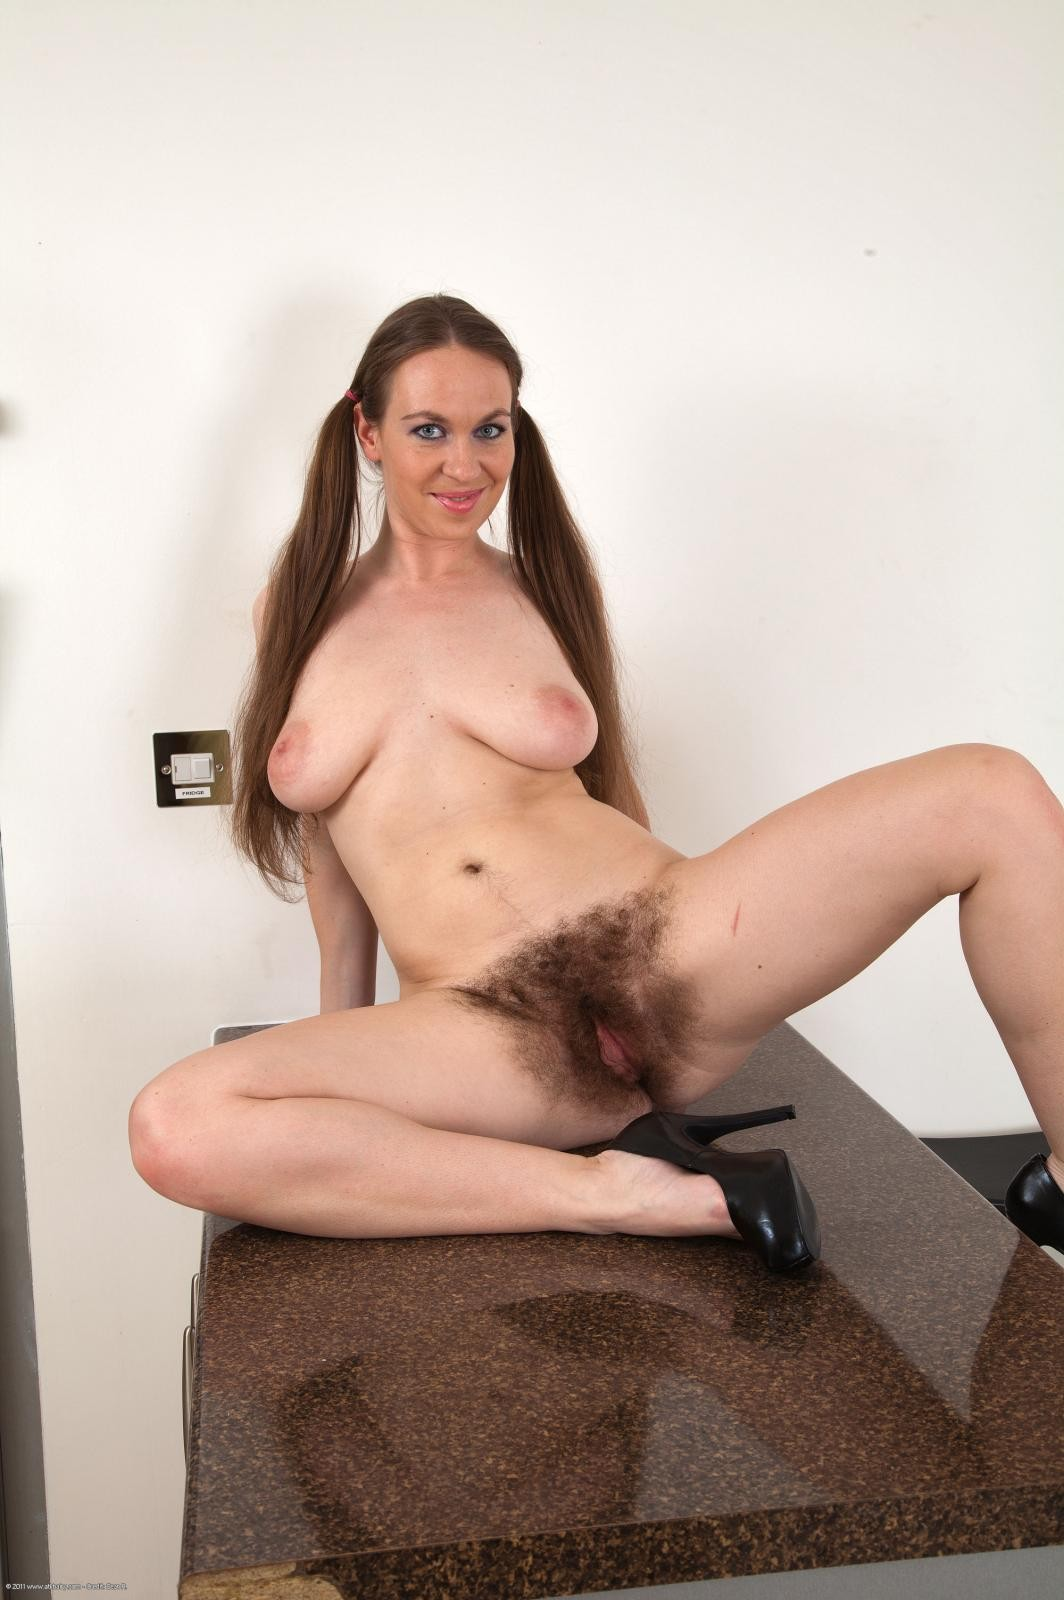 Body mature nudist vagina gallery her